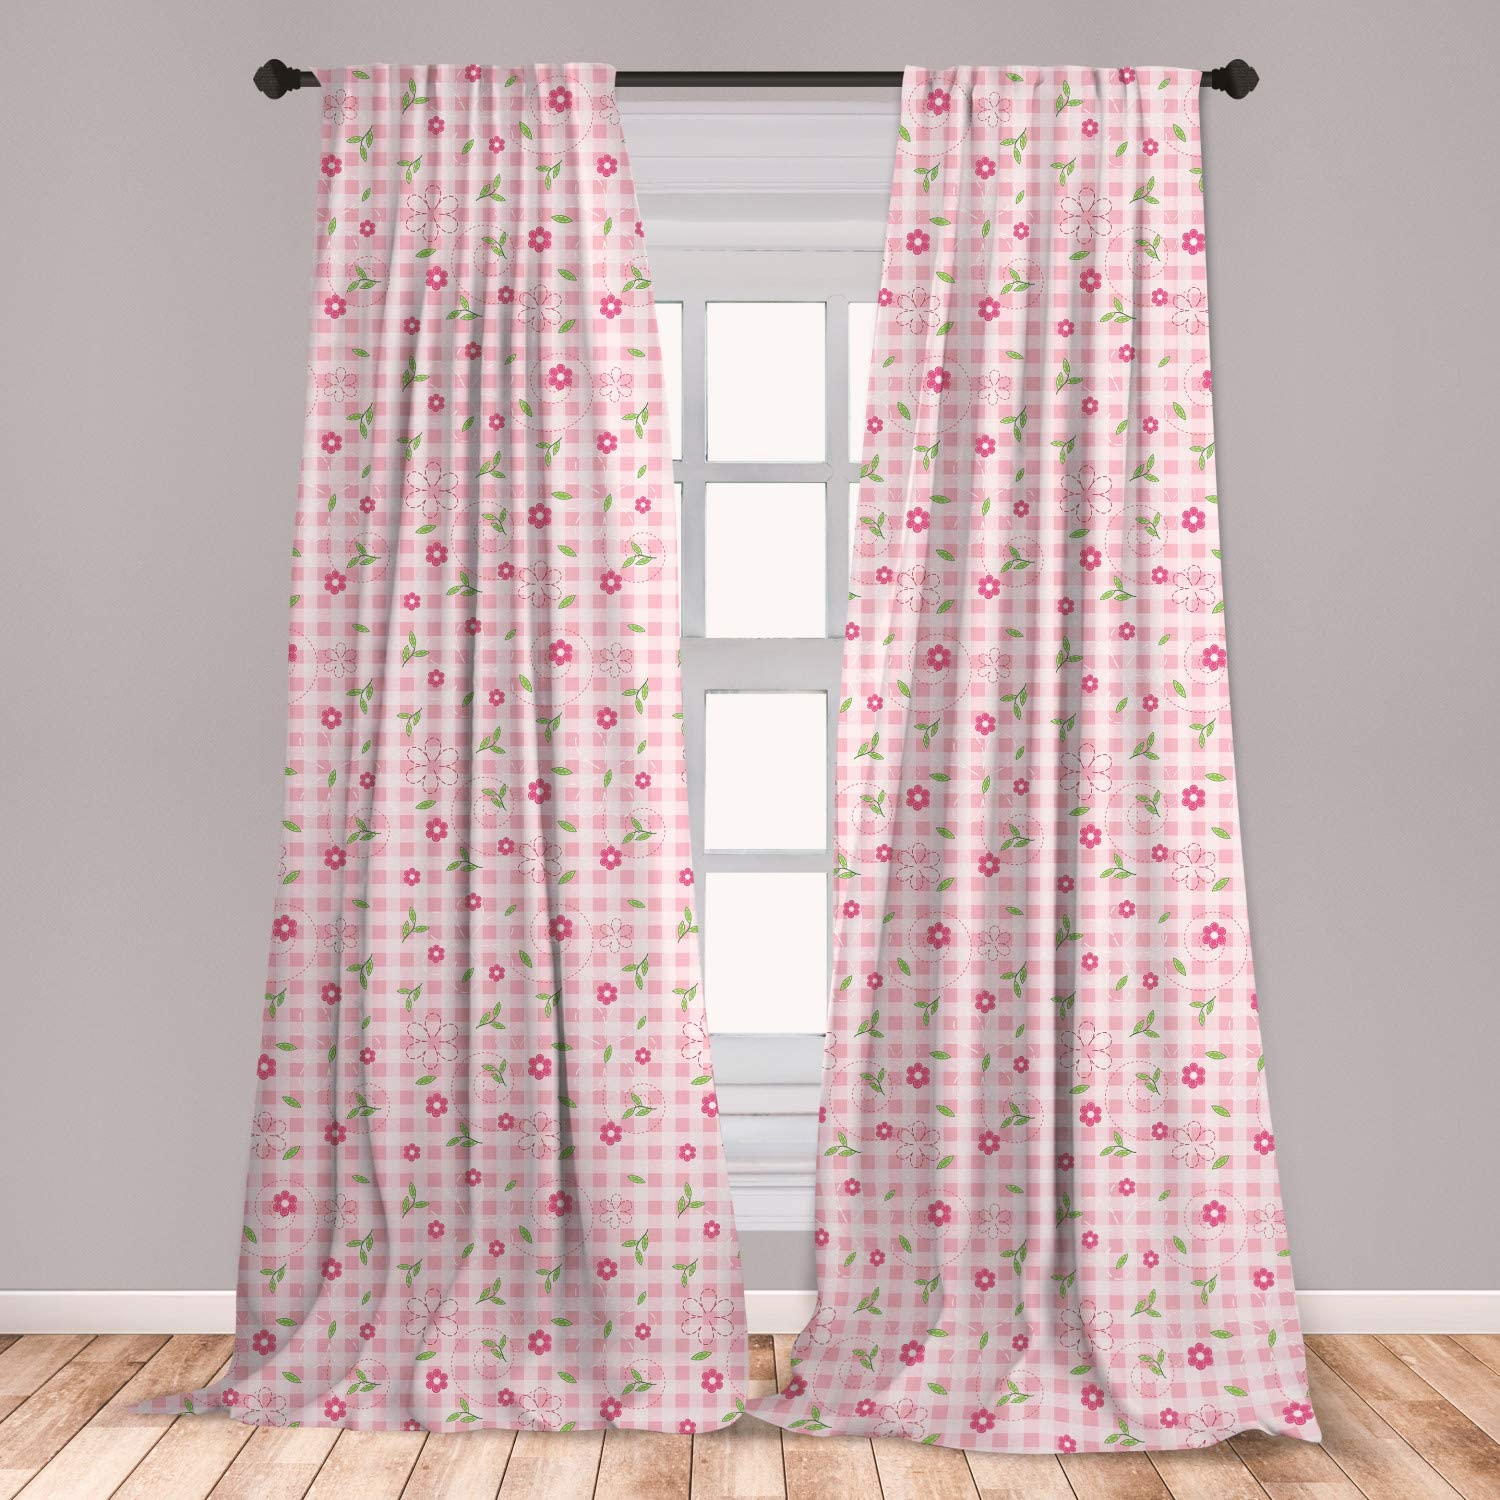 Ambesonne Floral Window Curtains, Soft Pastel Toned Flowers Over Striped Background Girls Design, Lightweight Decorative Panels Set of 2 with Rod Pocket, 56